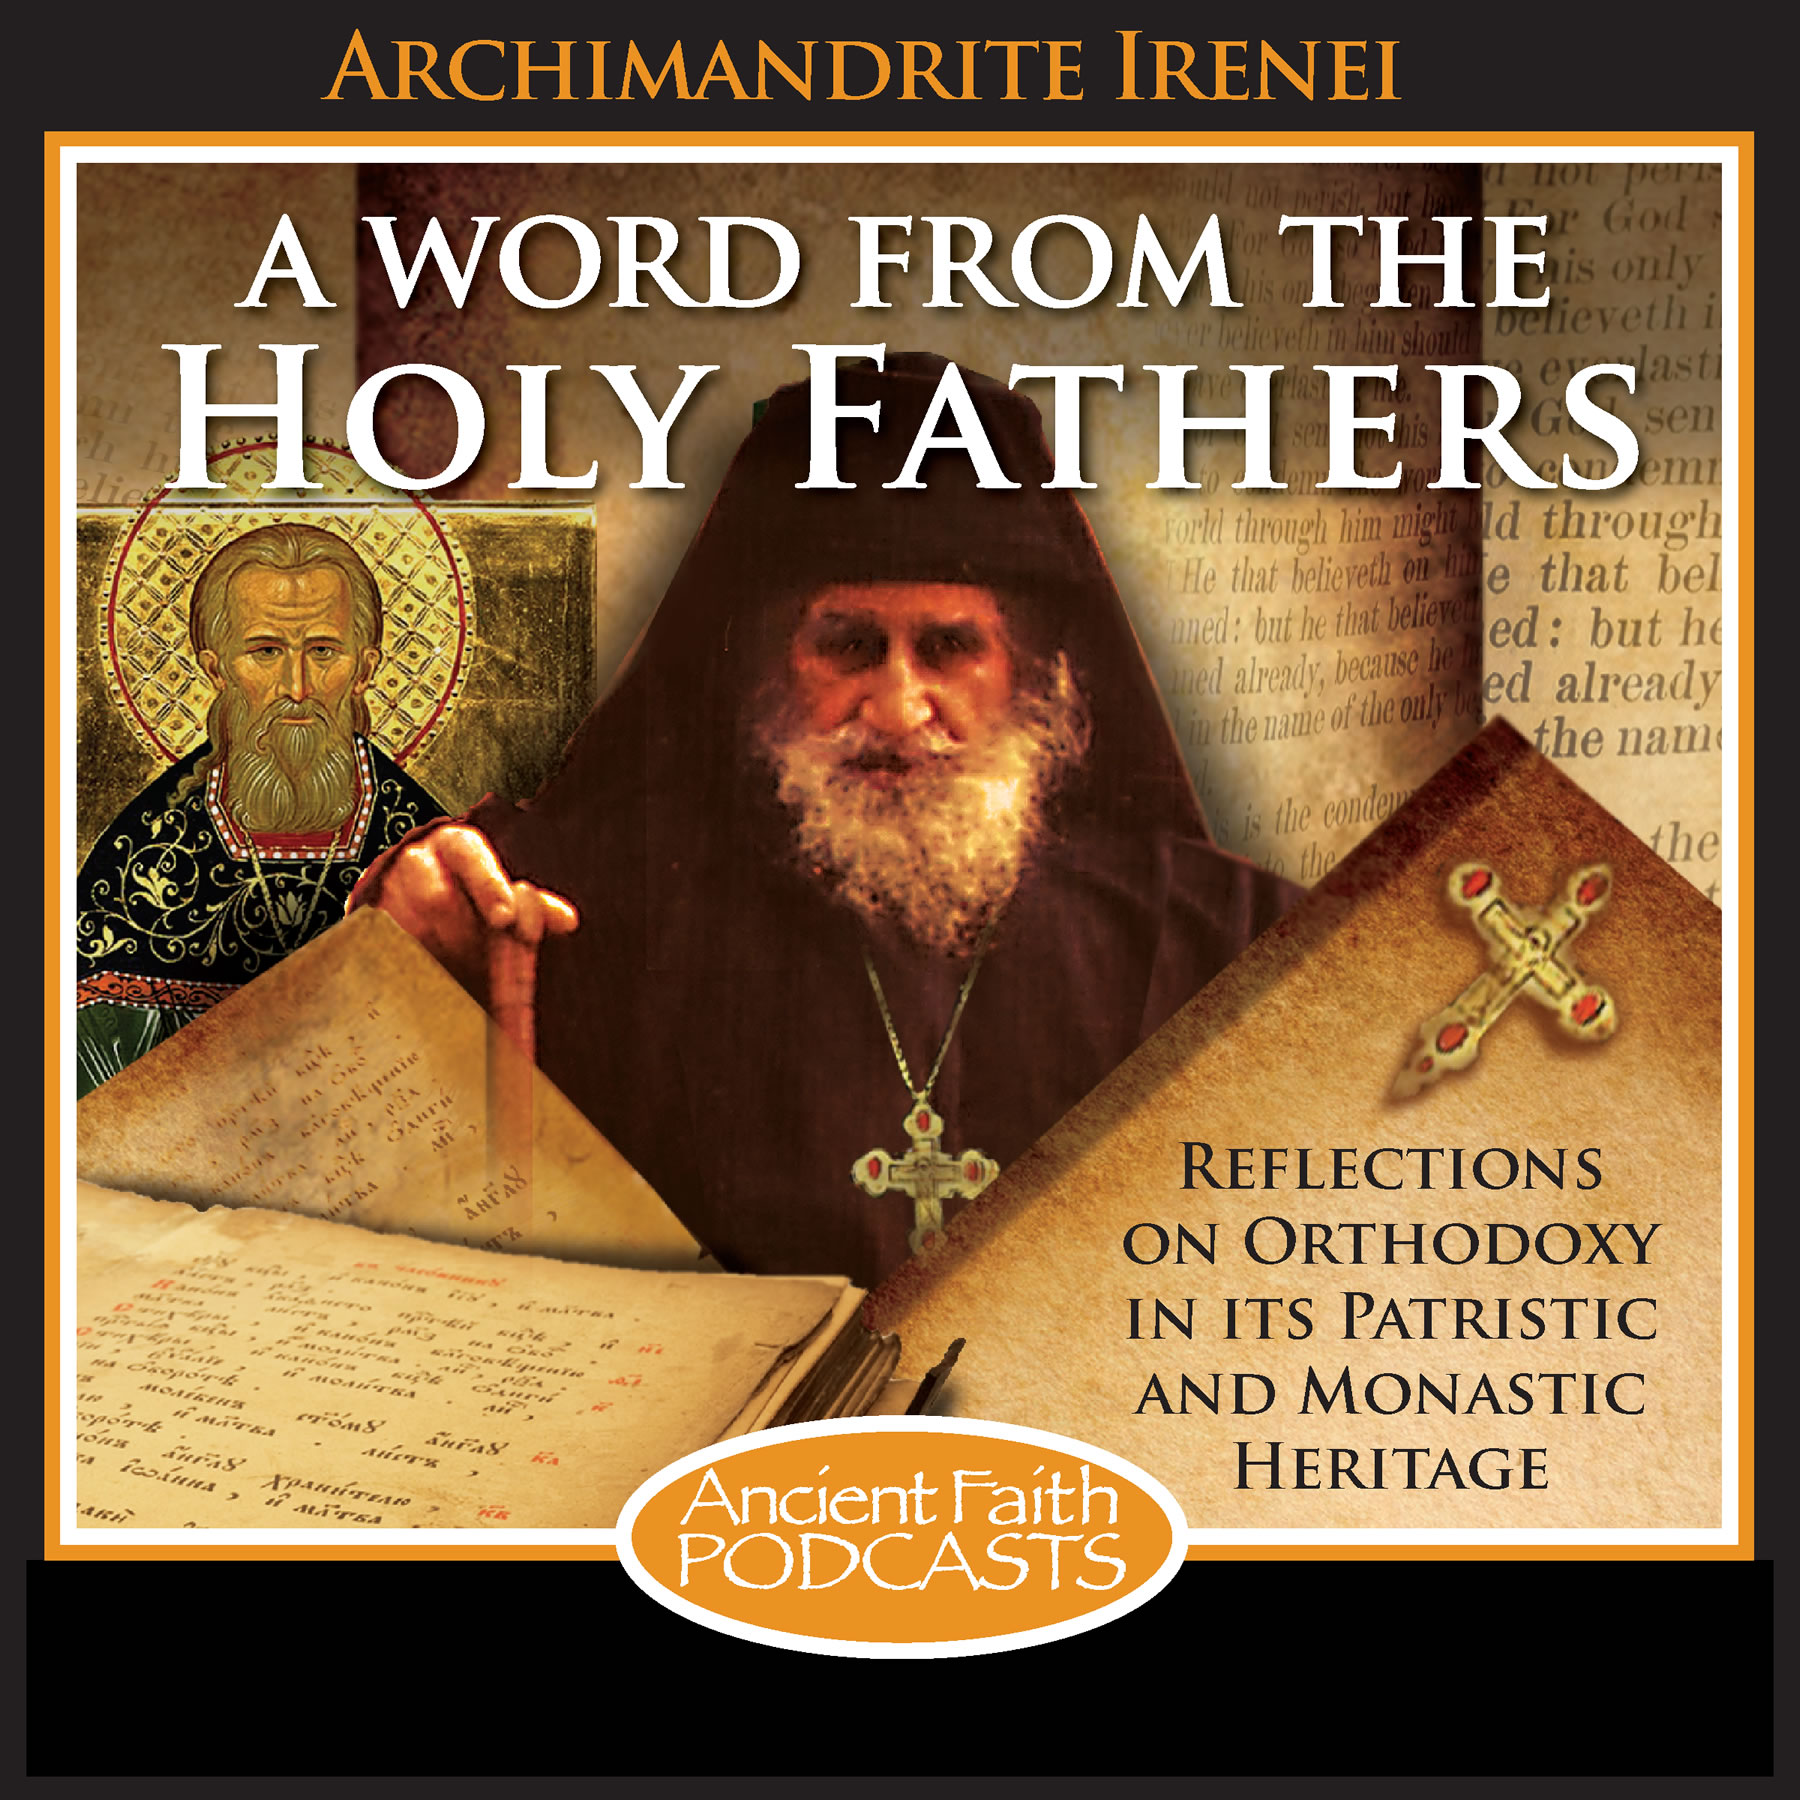 A Word from the Holy Fathers